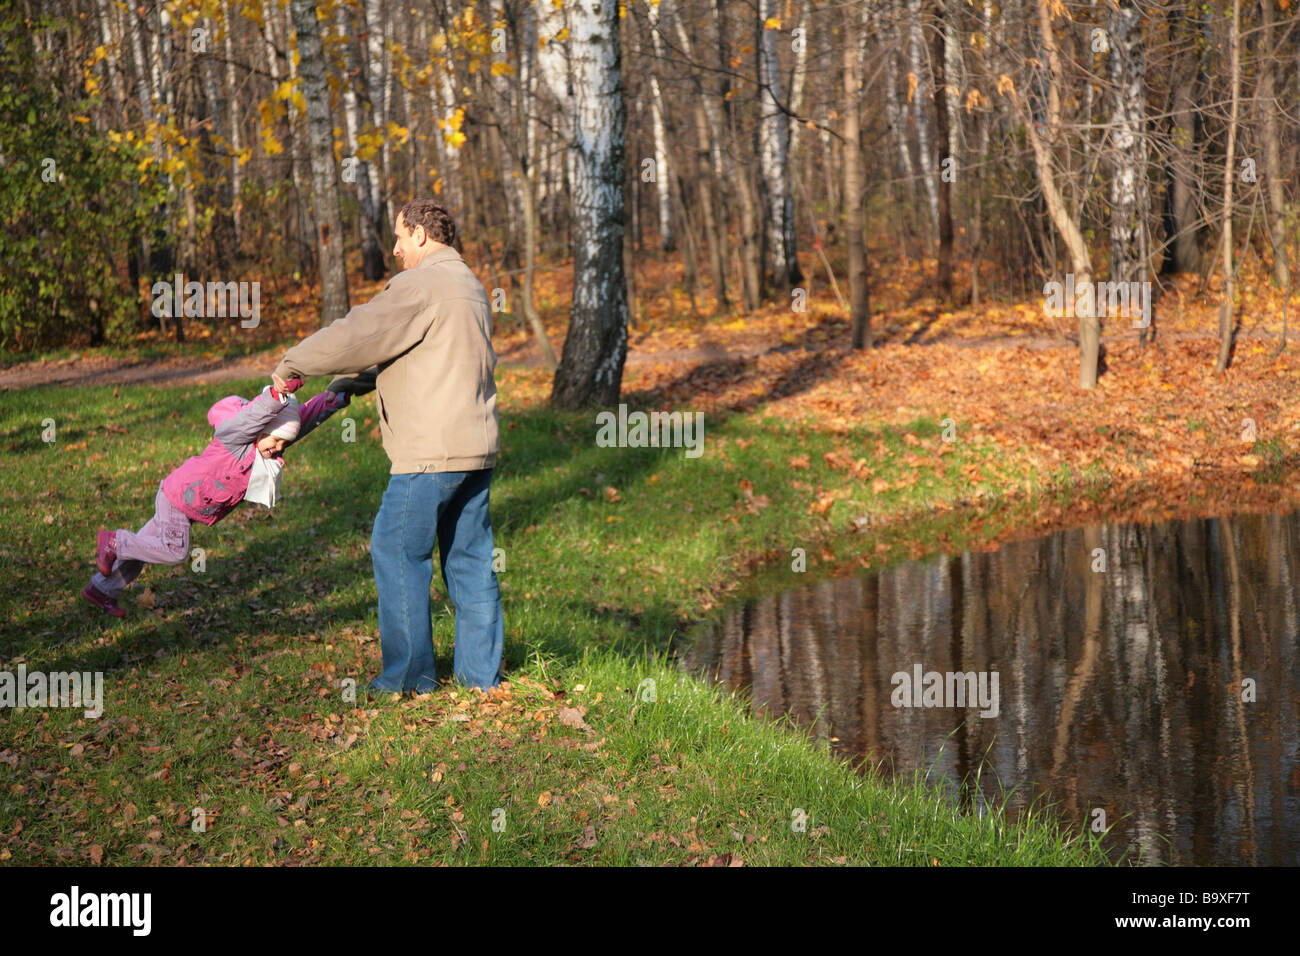 Grandfather rotates  granddaughter  in wood in autumn near pond - Stock Image